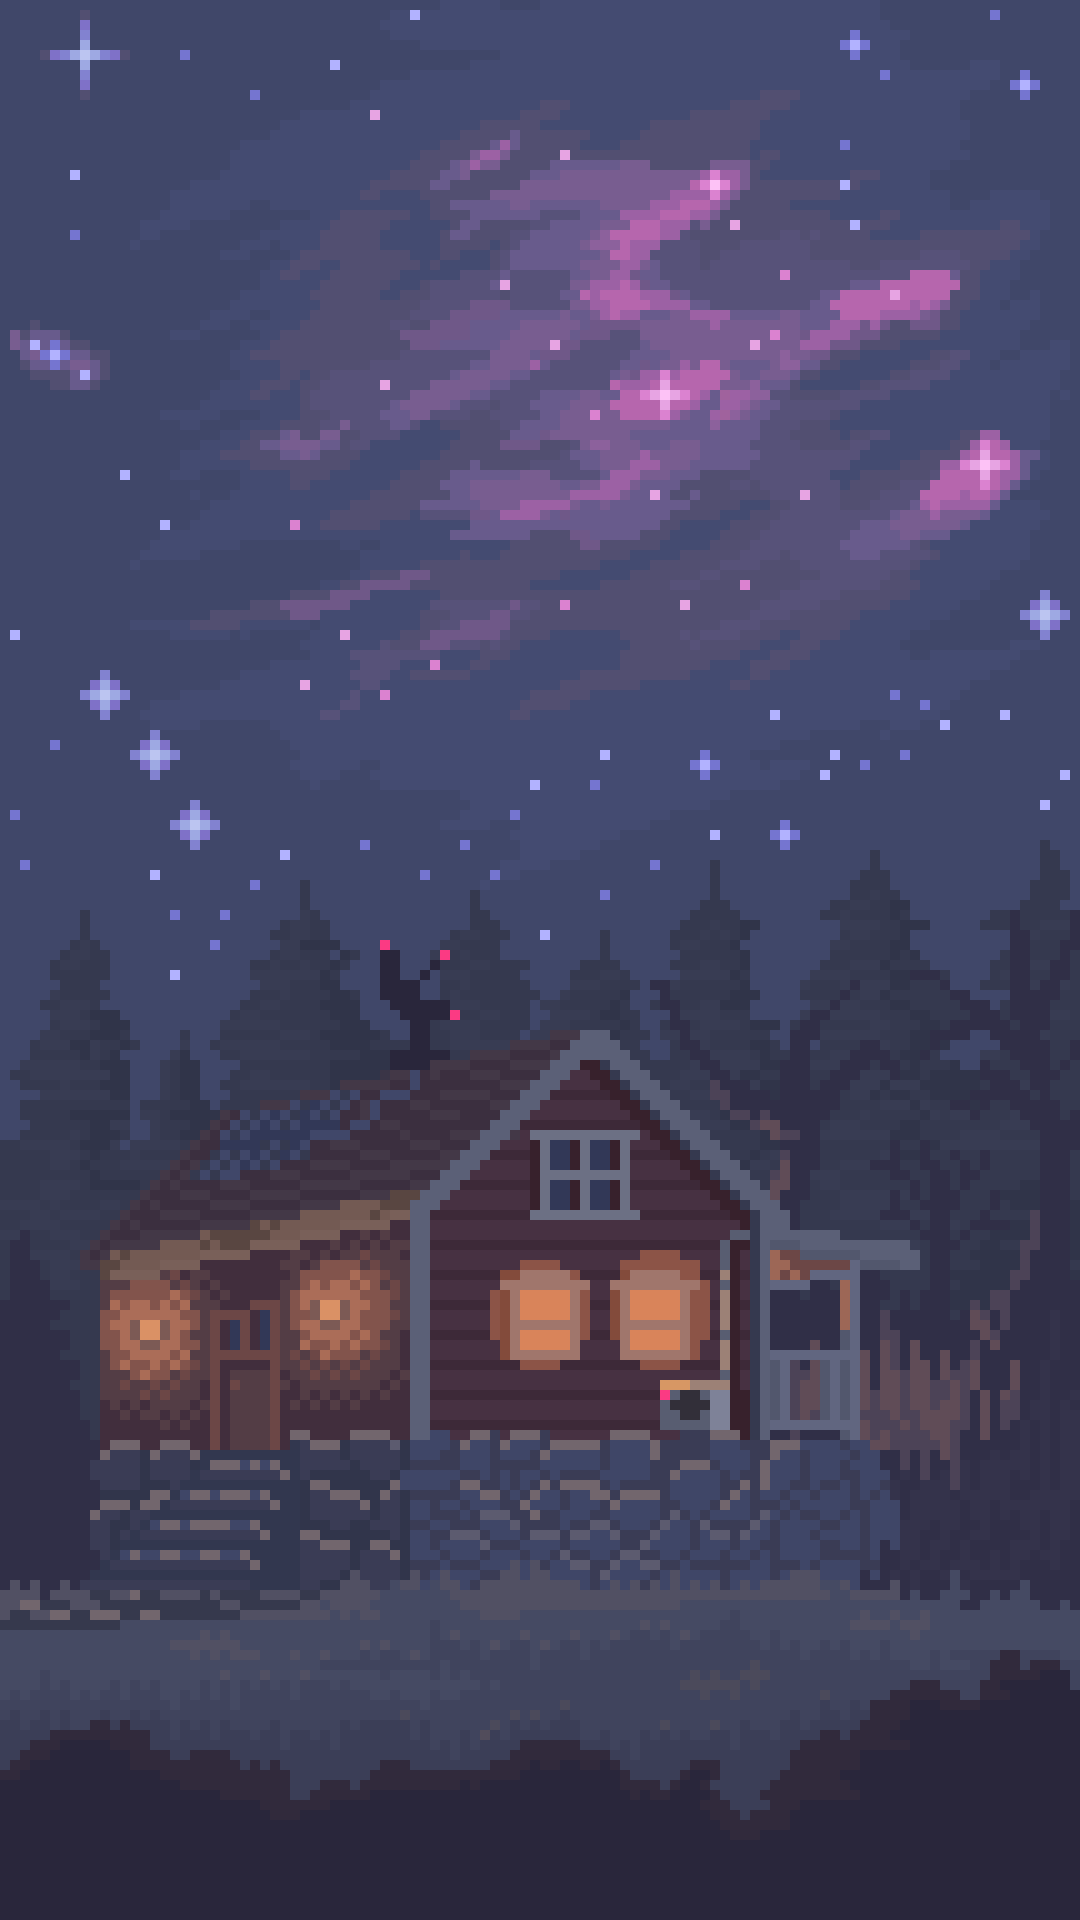 The Night Sky Full View On Phone Is Recommended Cool Pixel Art